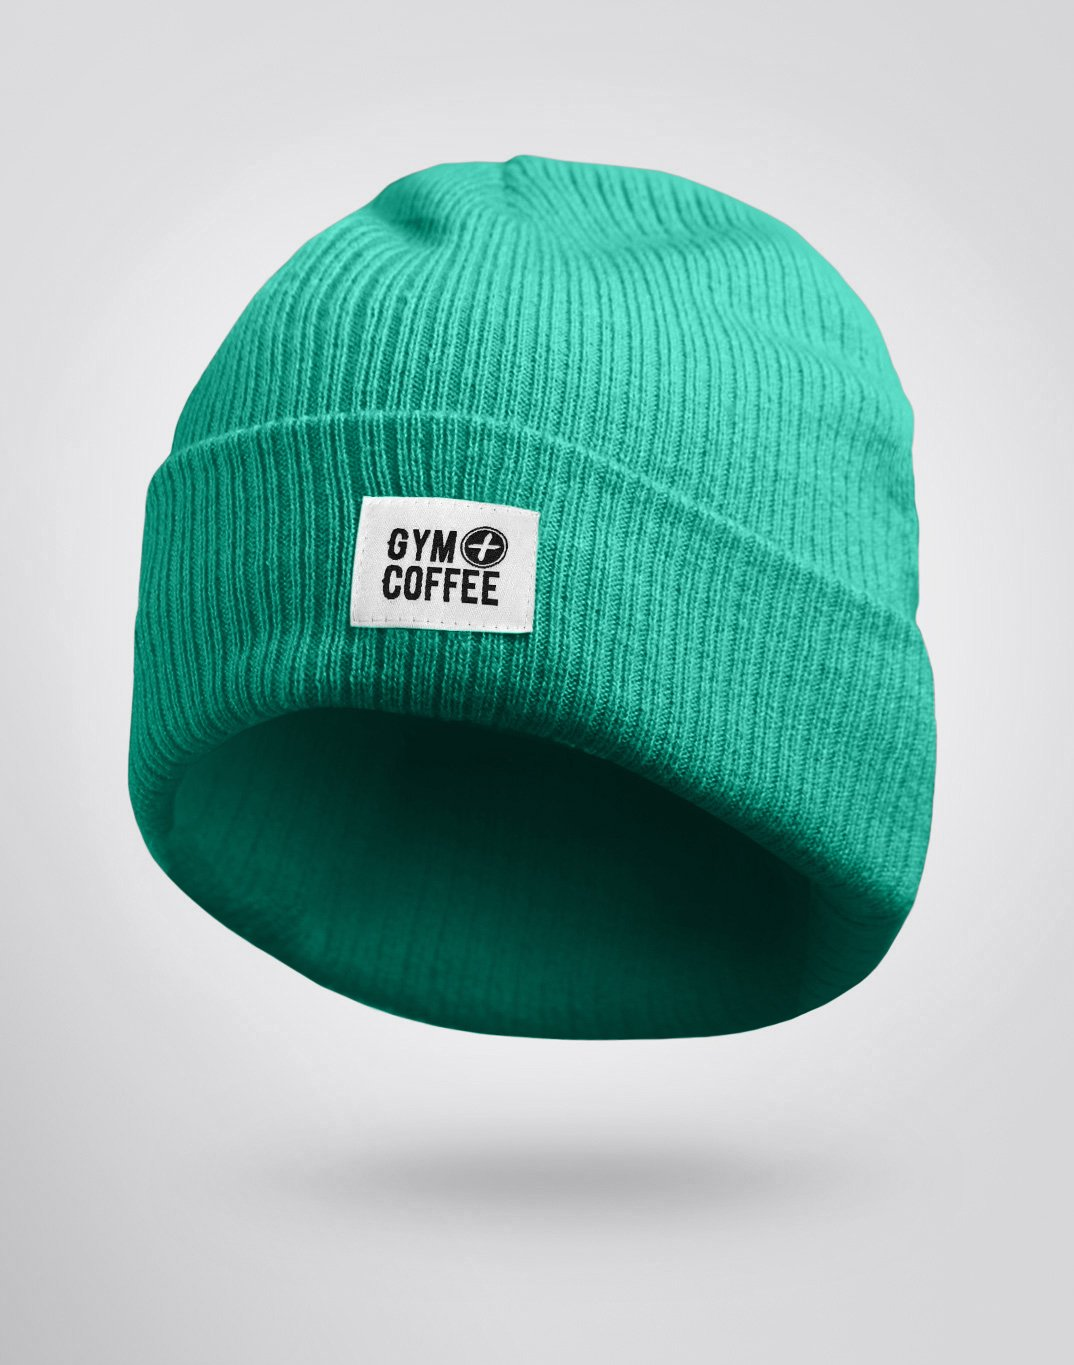 Gym Plus Coffee Beanie Sea Green Beanie Designed in Ireland